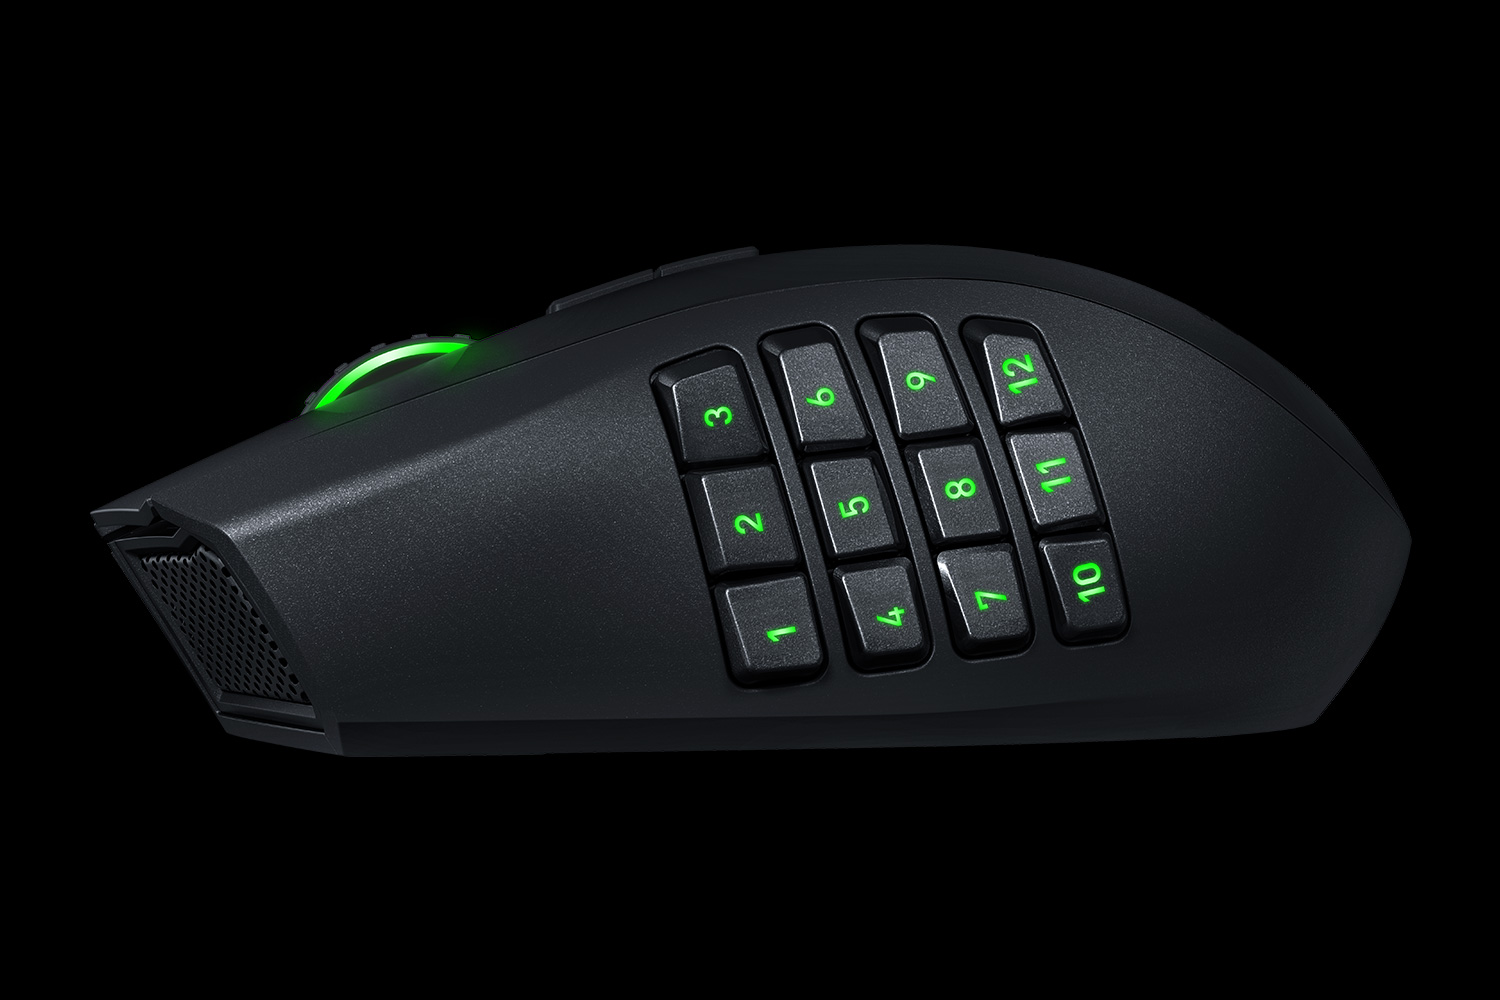 Razer Naga Epic Chroma Gaming Mouse Customizable Chroma